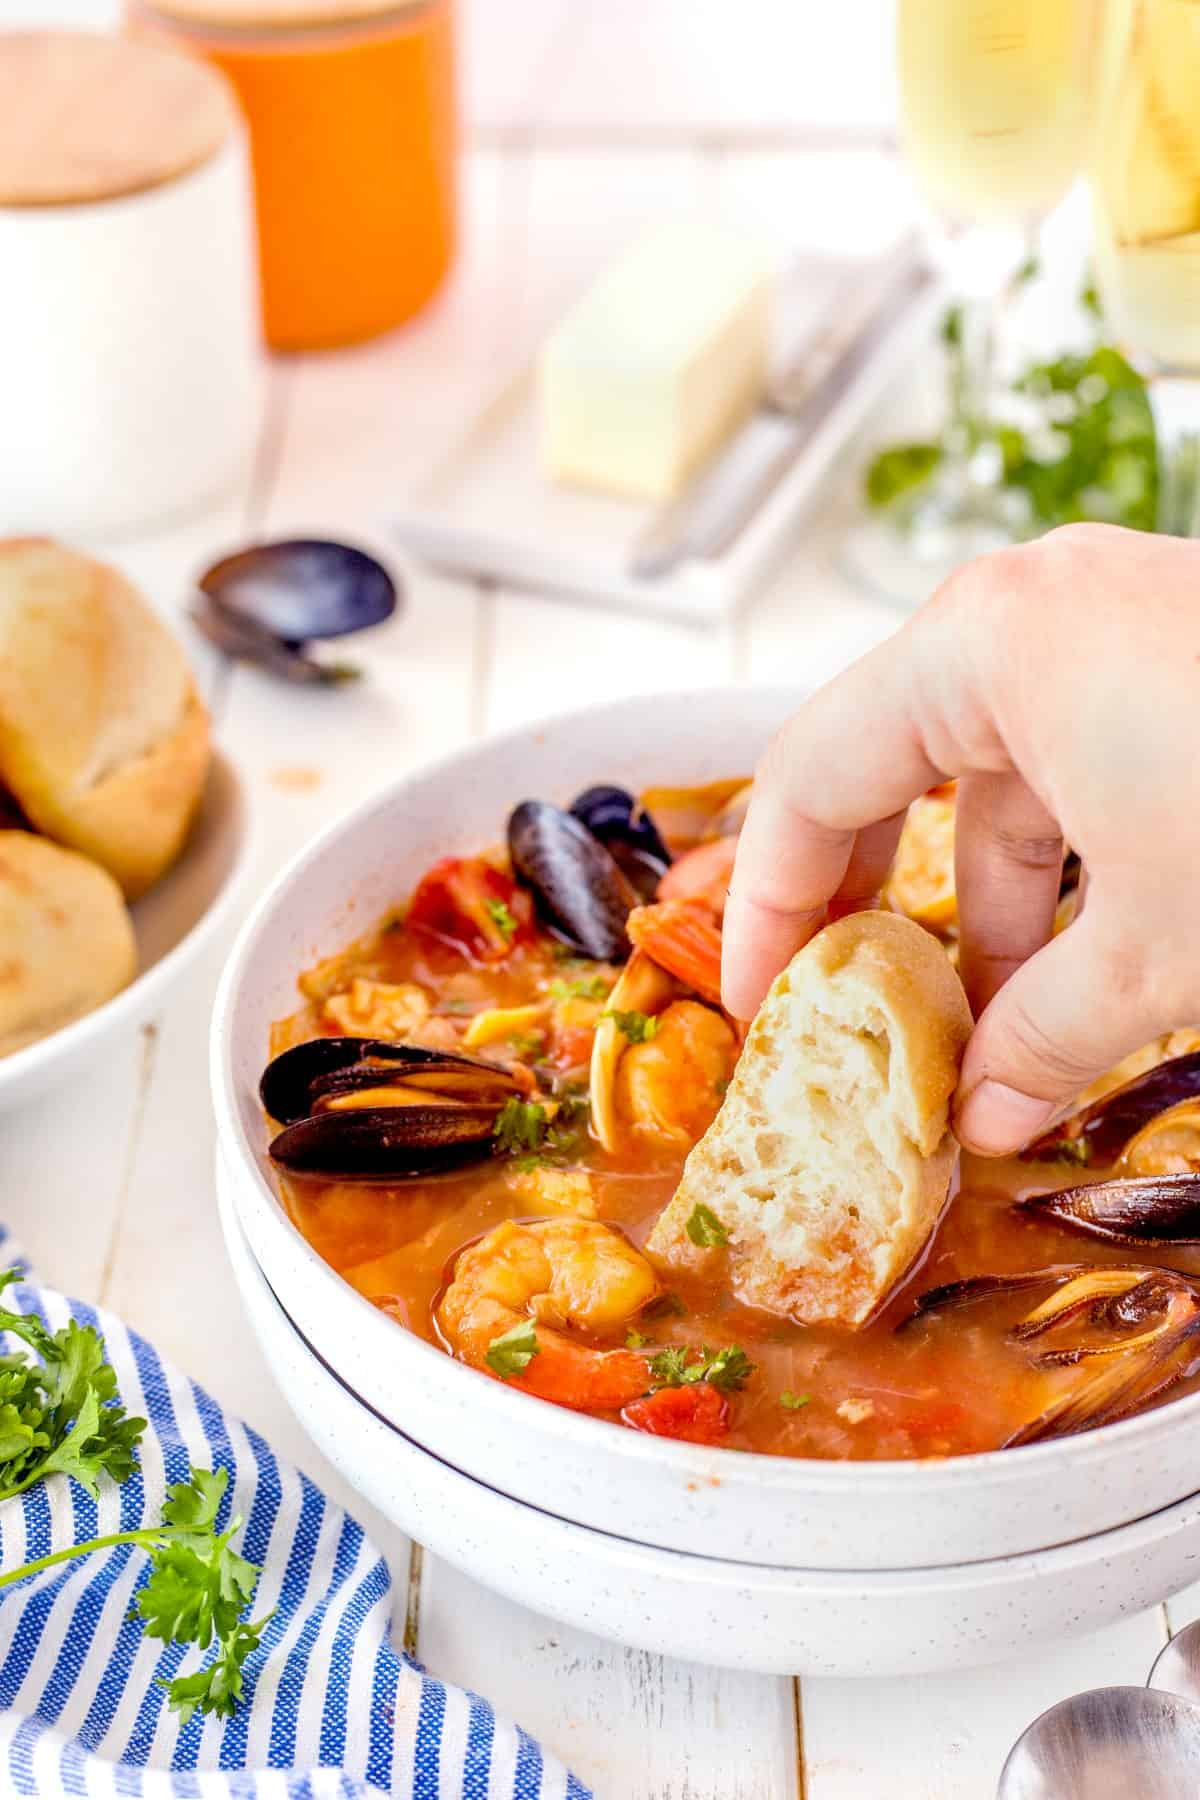 Dipping bread into seafood stew.